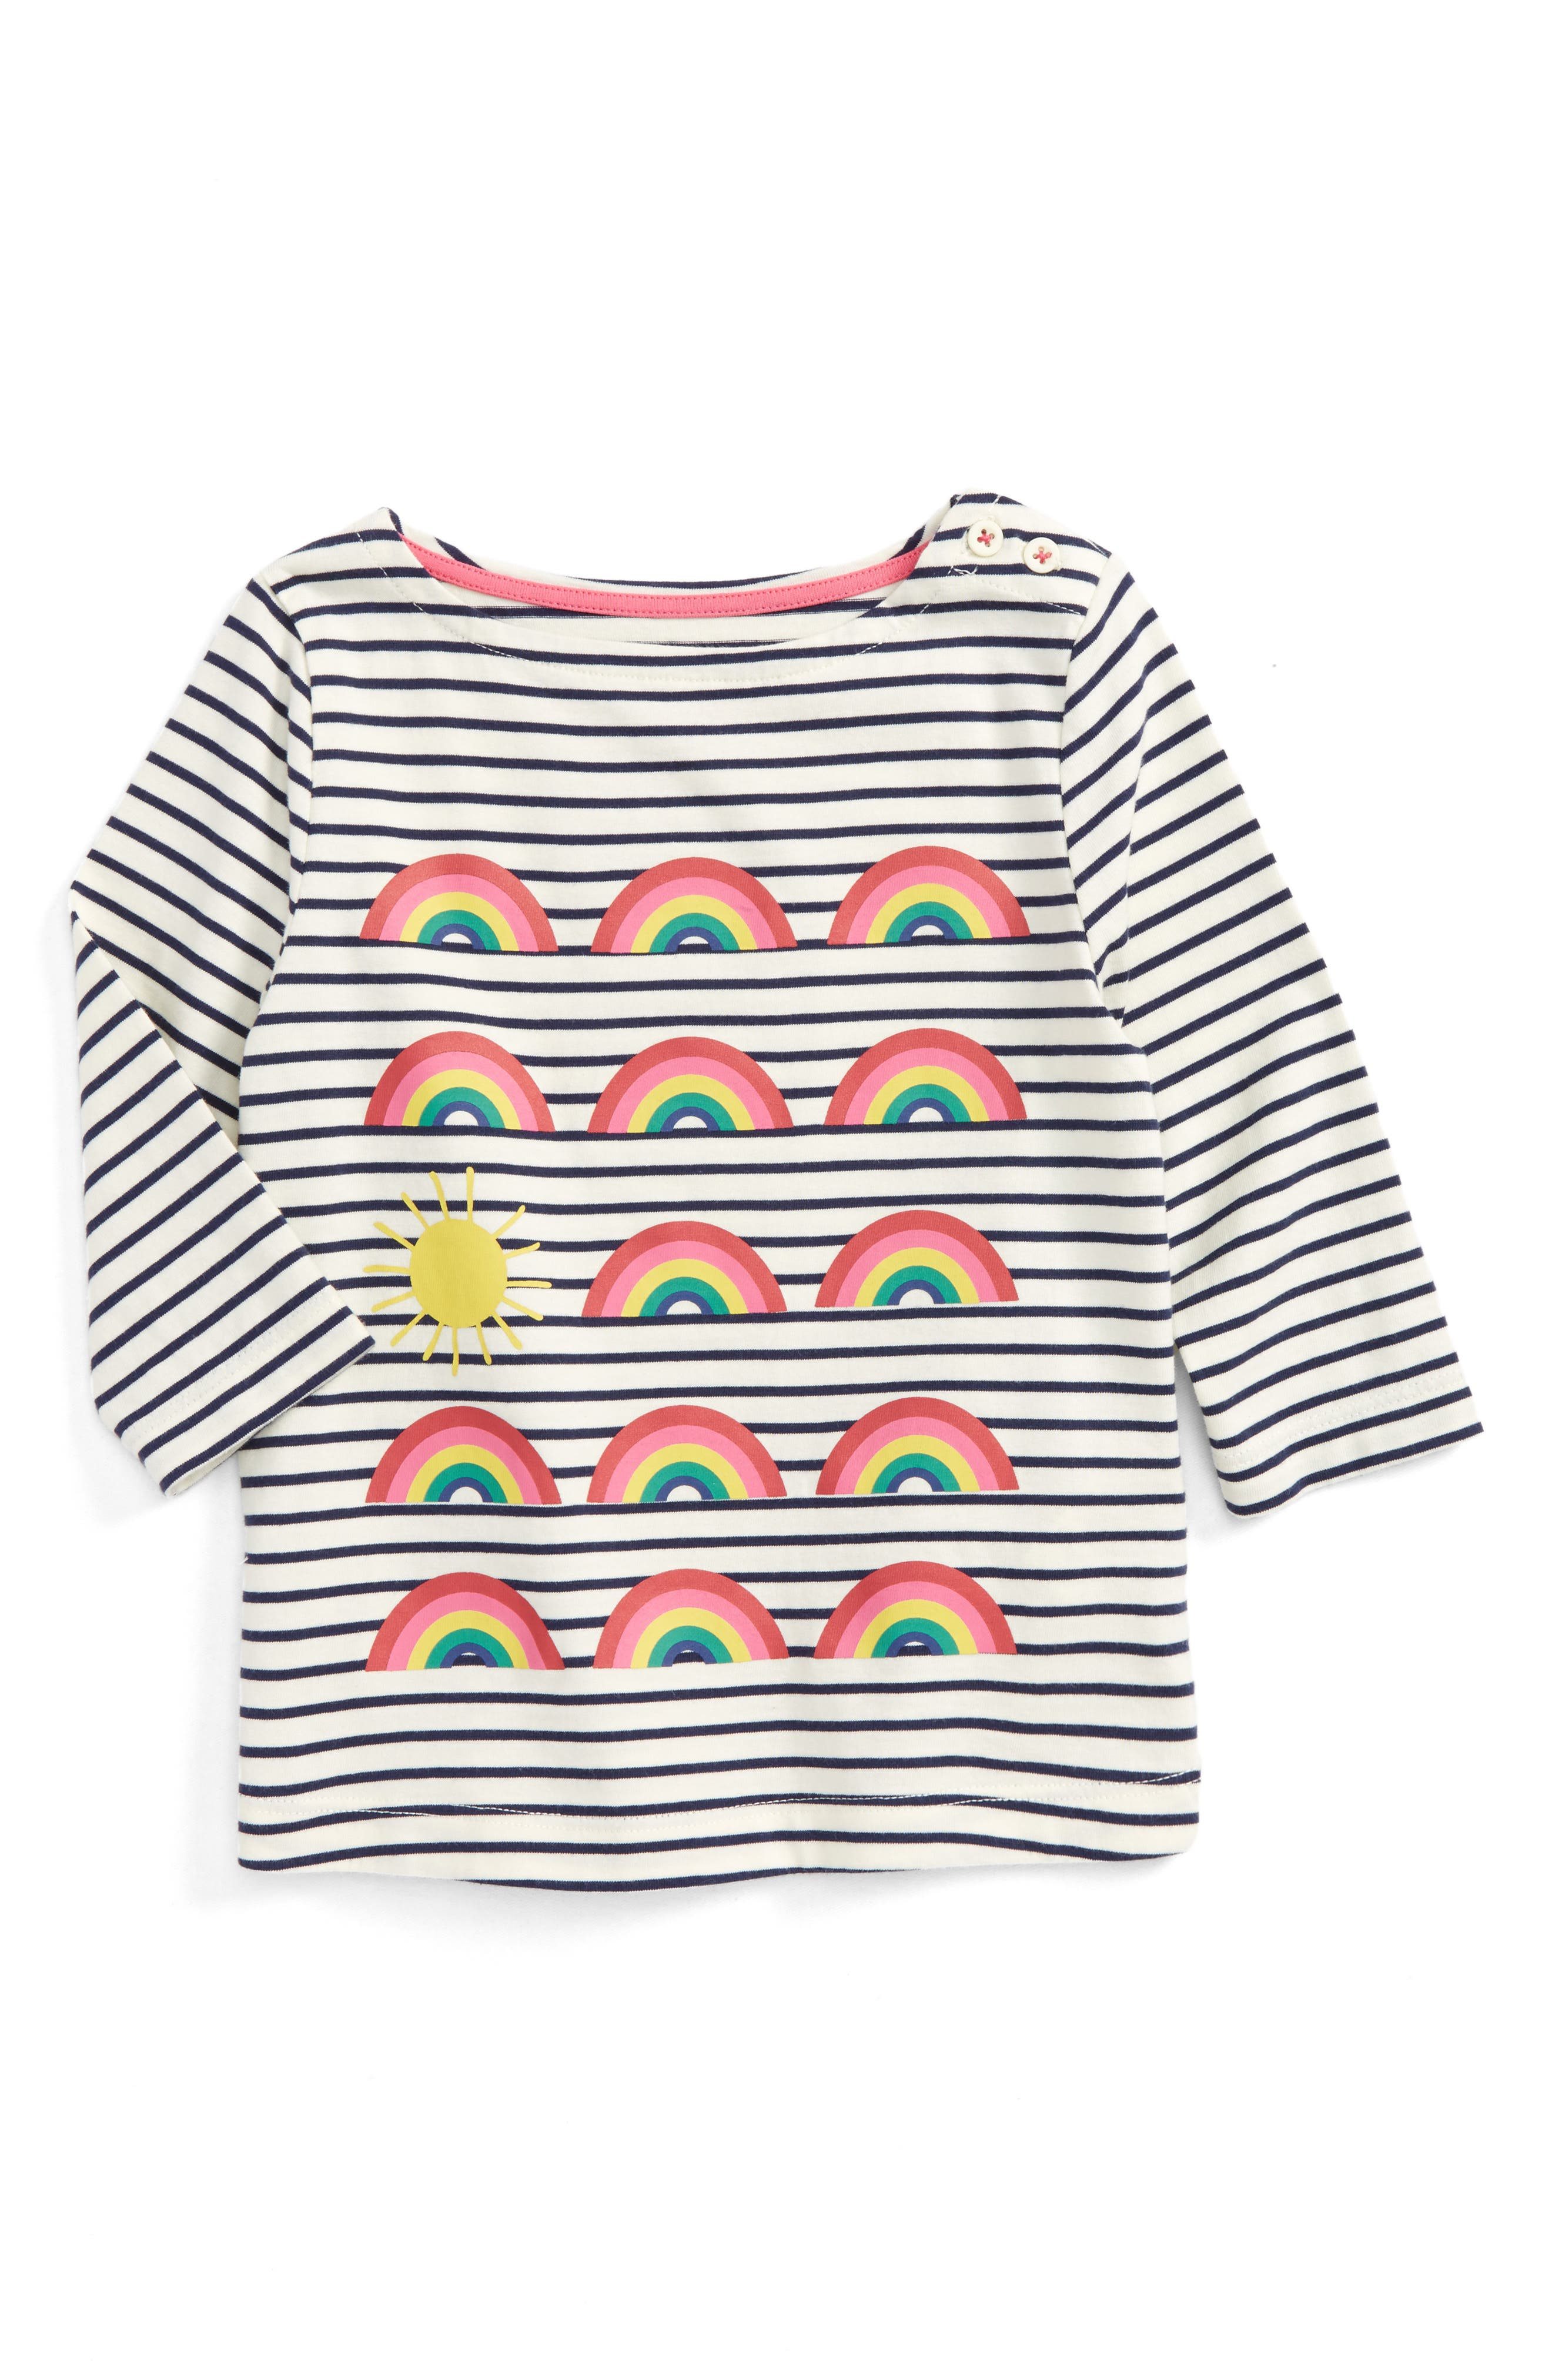 Odd One Out Graphic Tee,                         Main,                         color, School Navy/ Rainbows